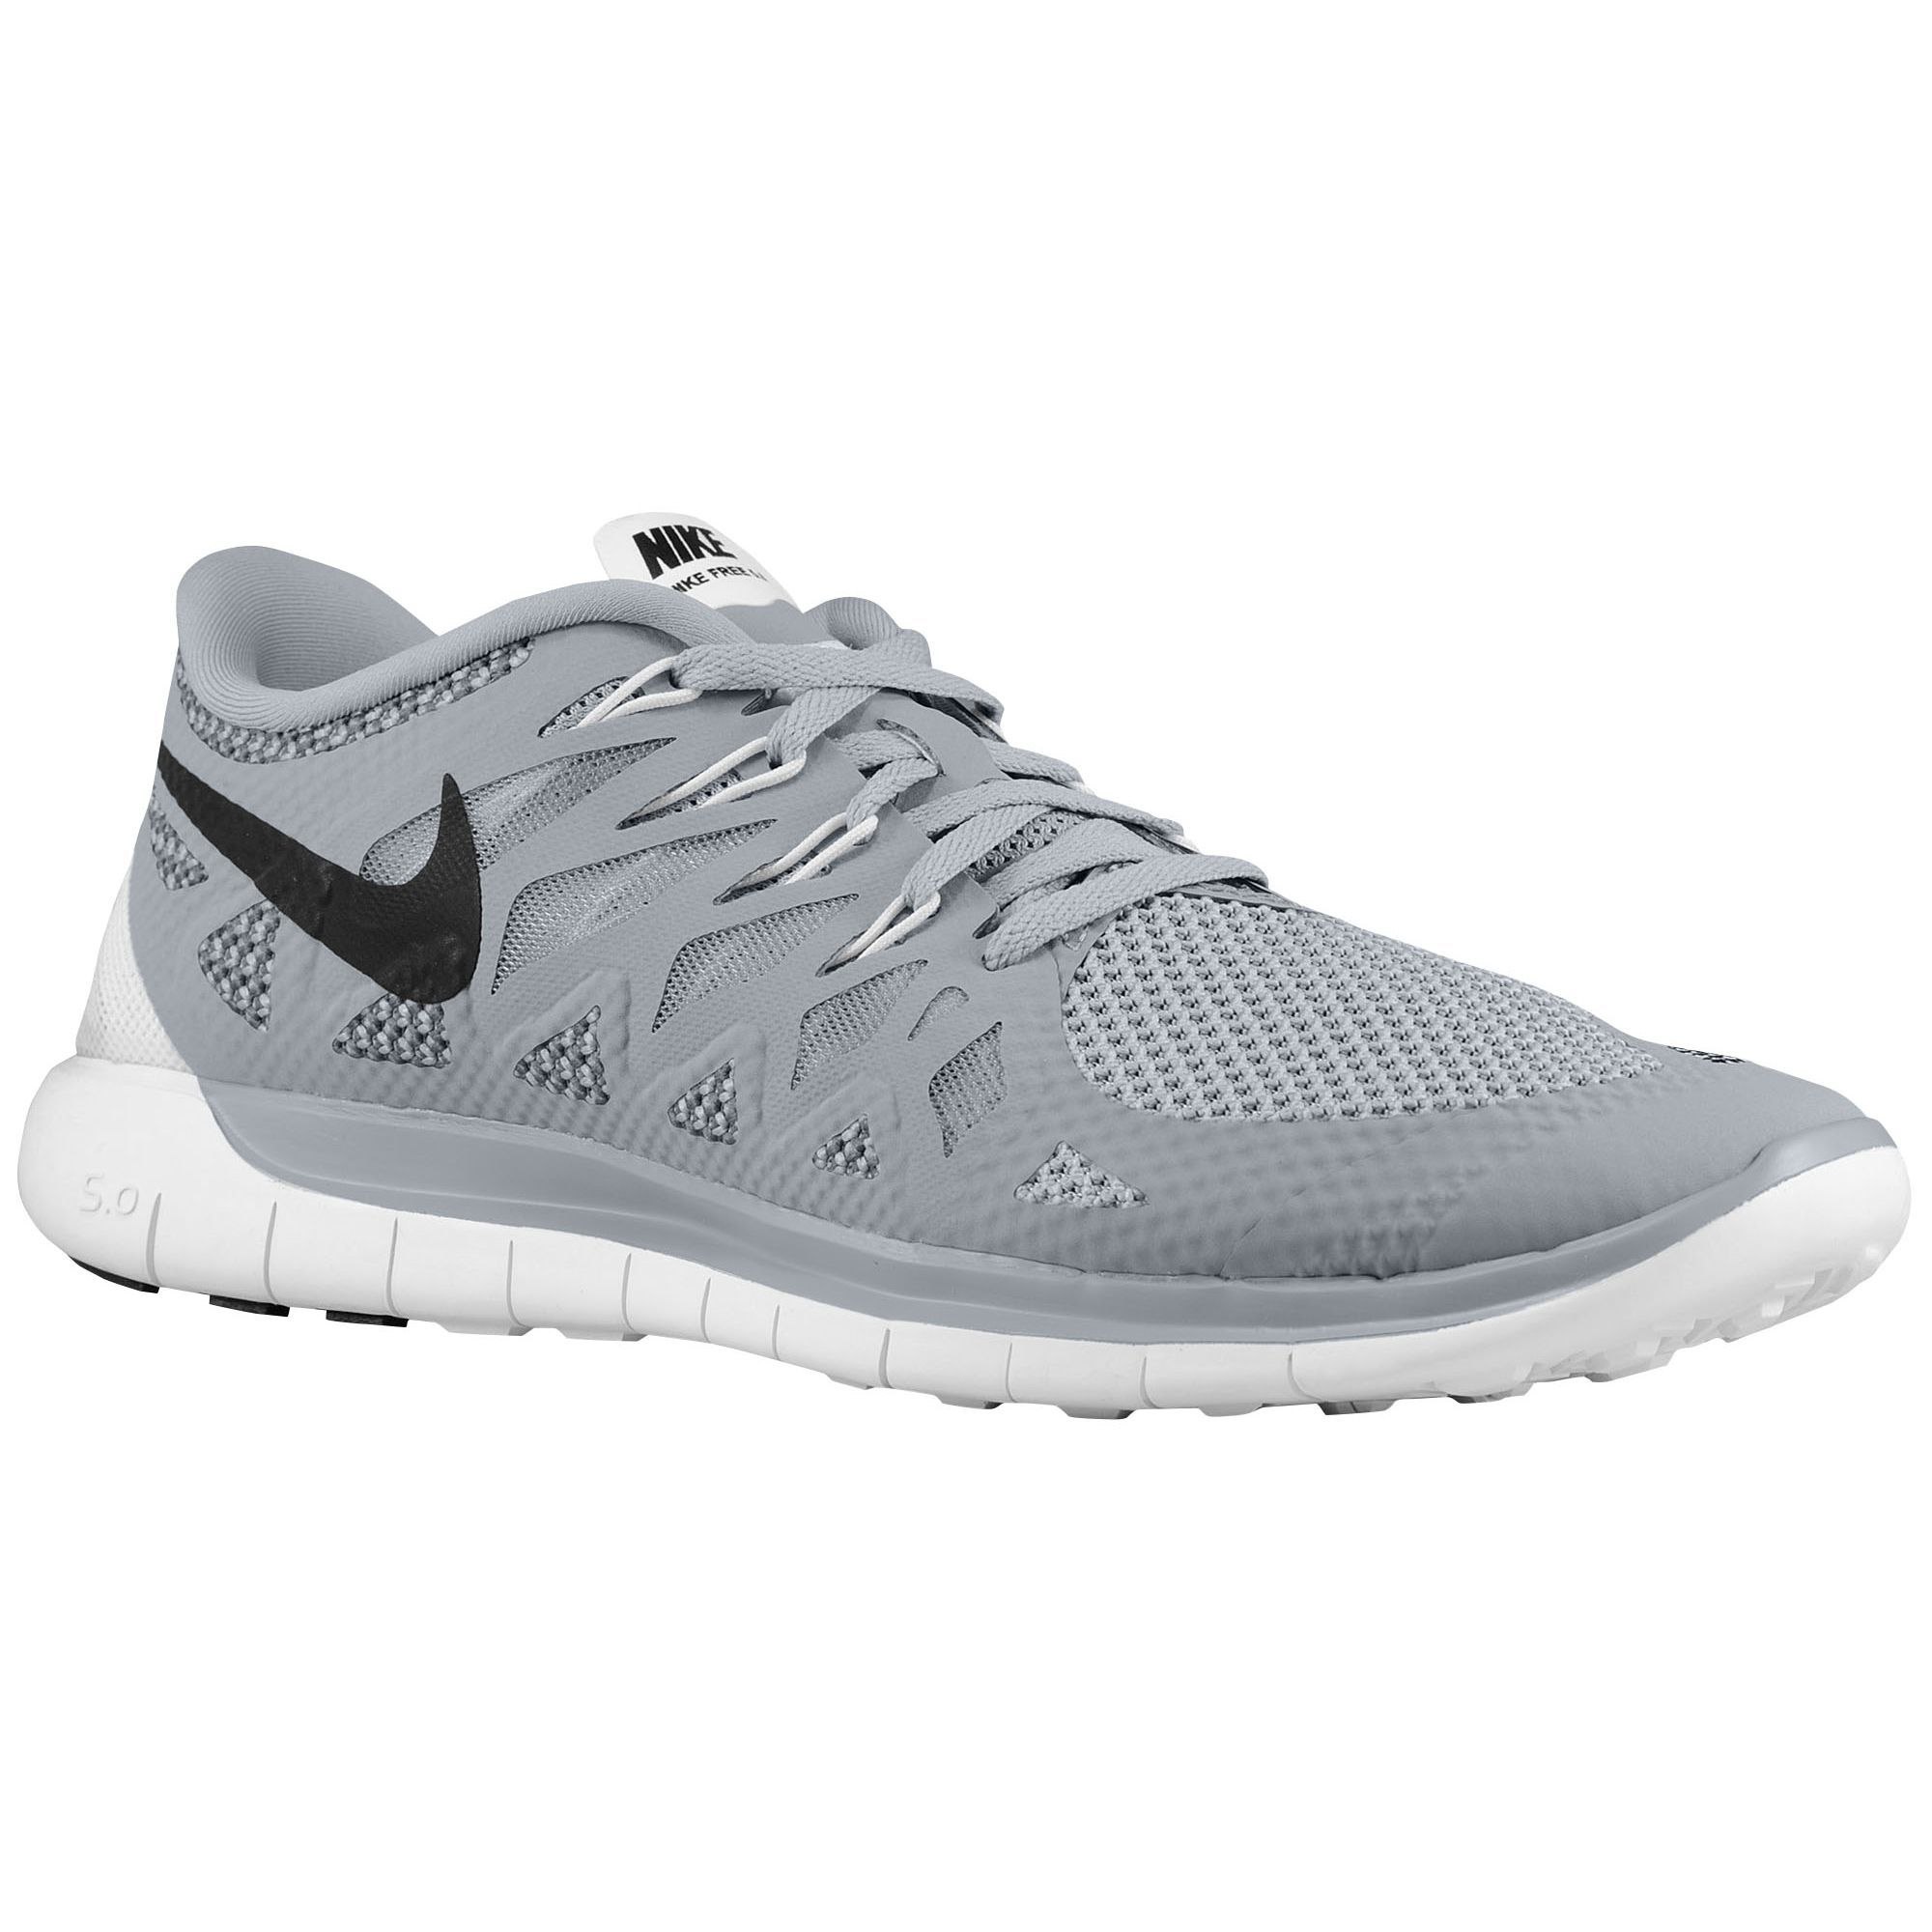 nike free 5.0 2014 Free return - nike free run 5.0 2014 - OFF66 ...